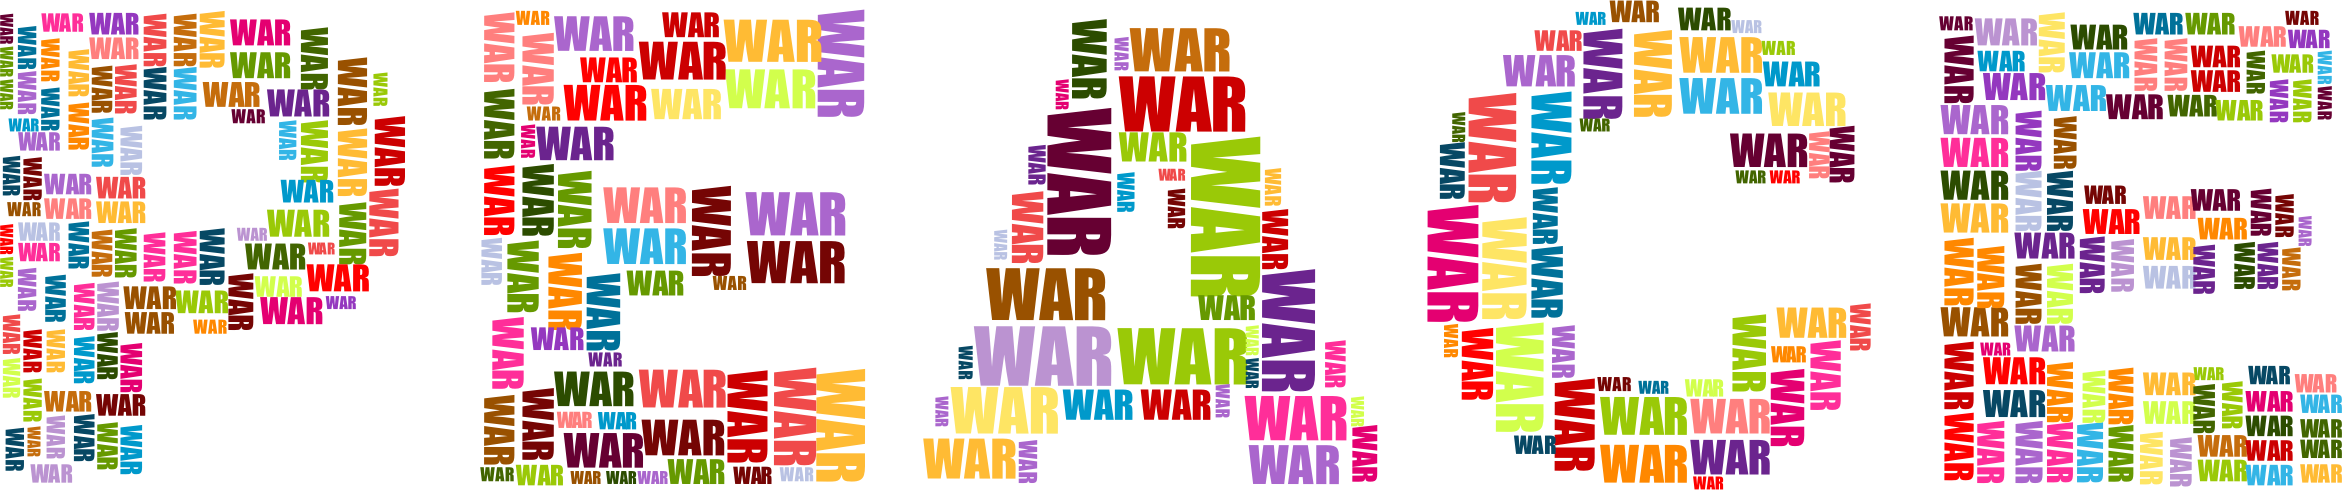 Peace And War by GDJ